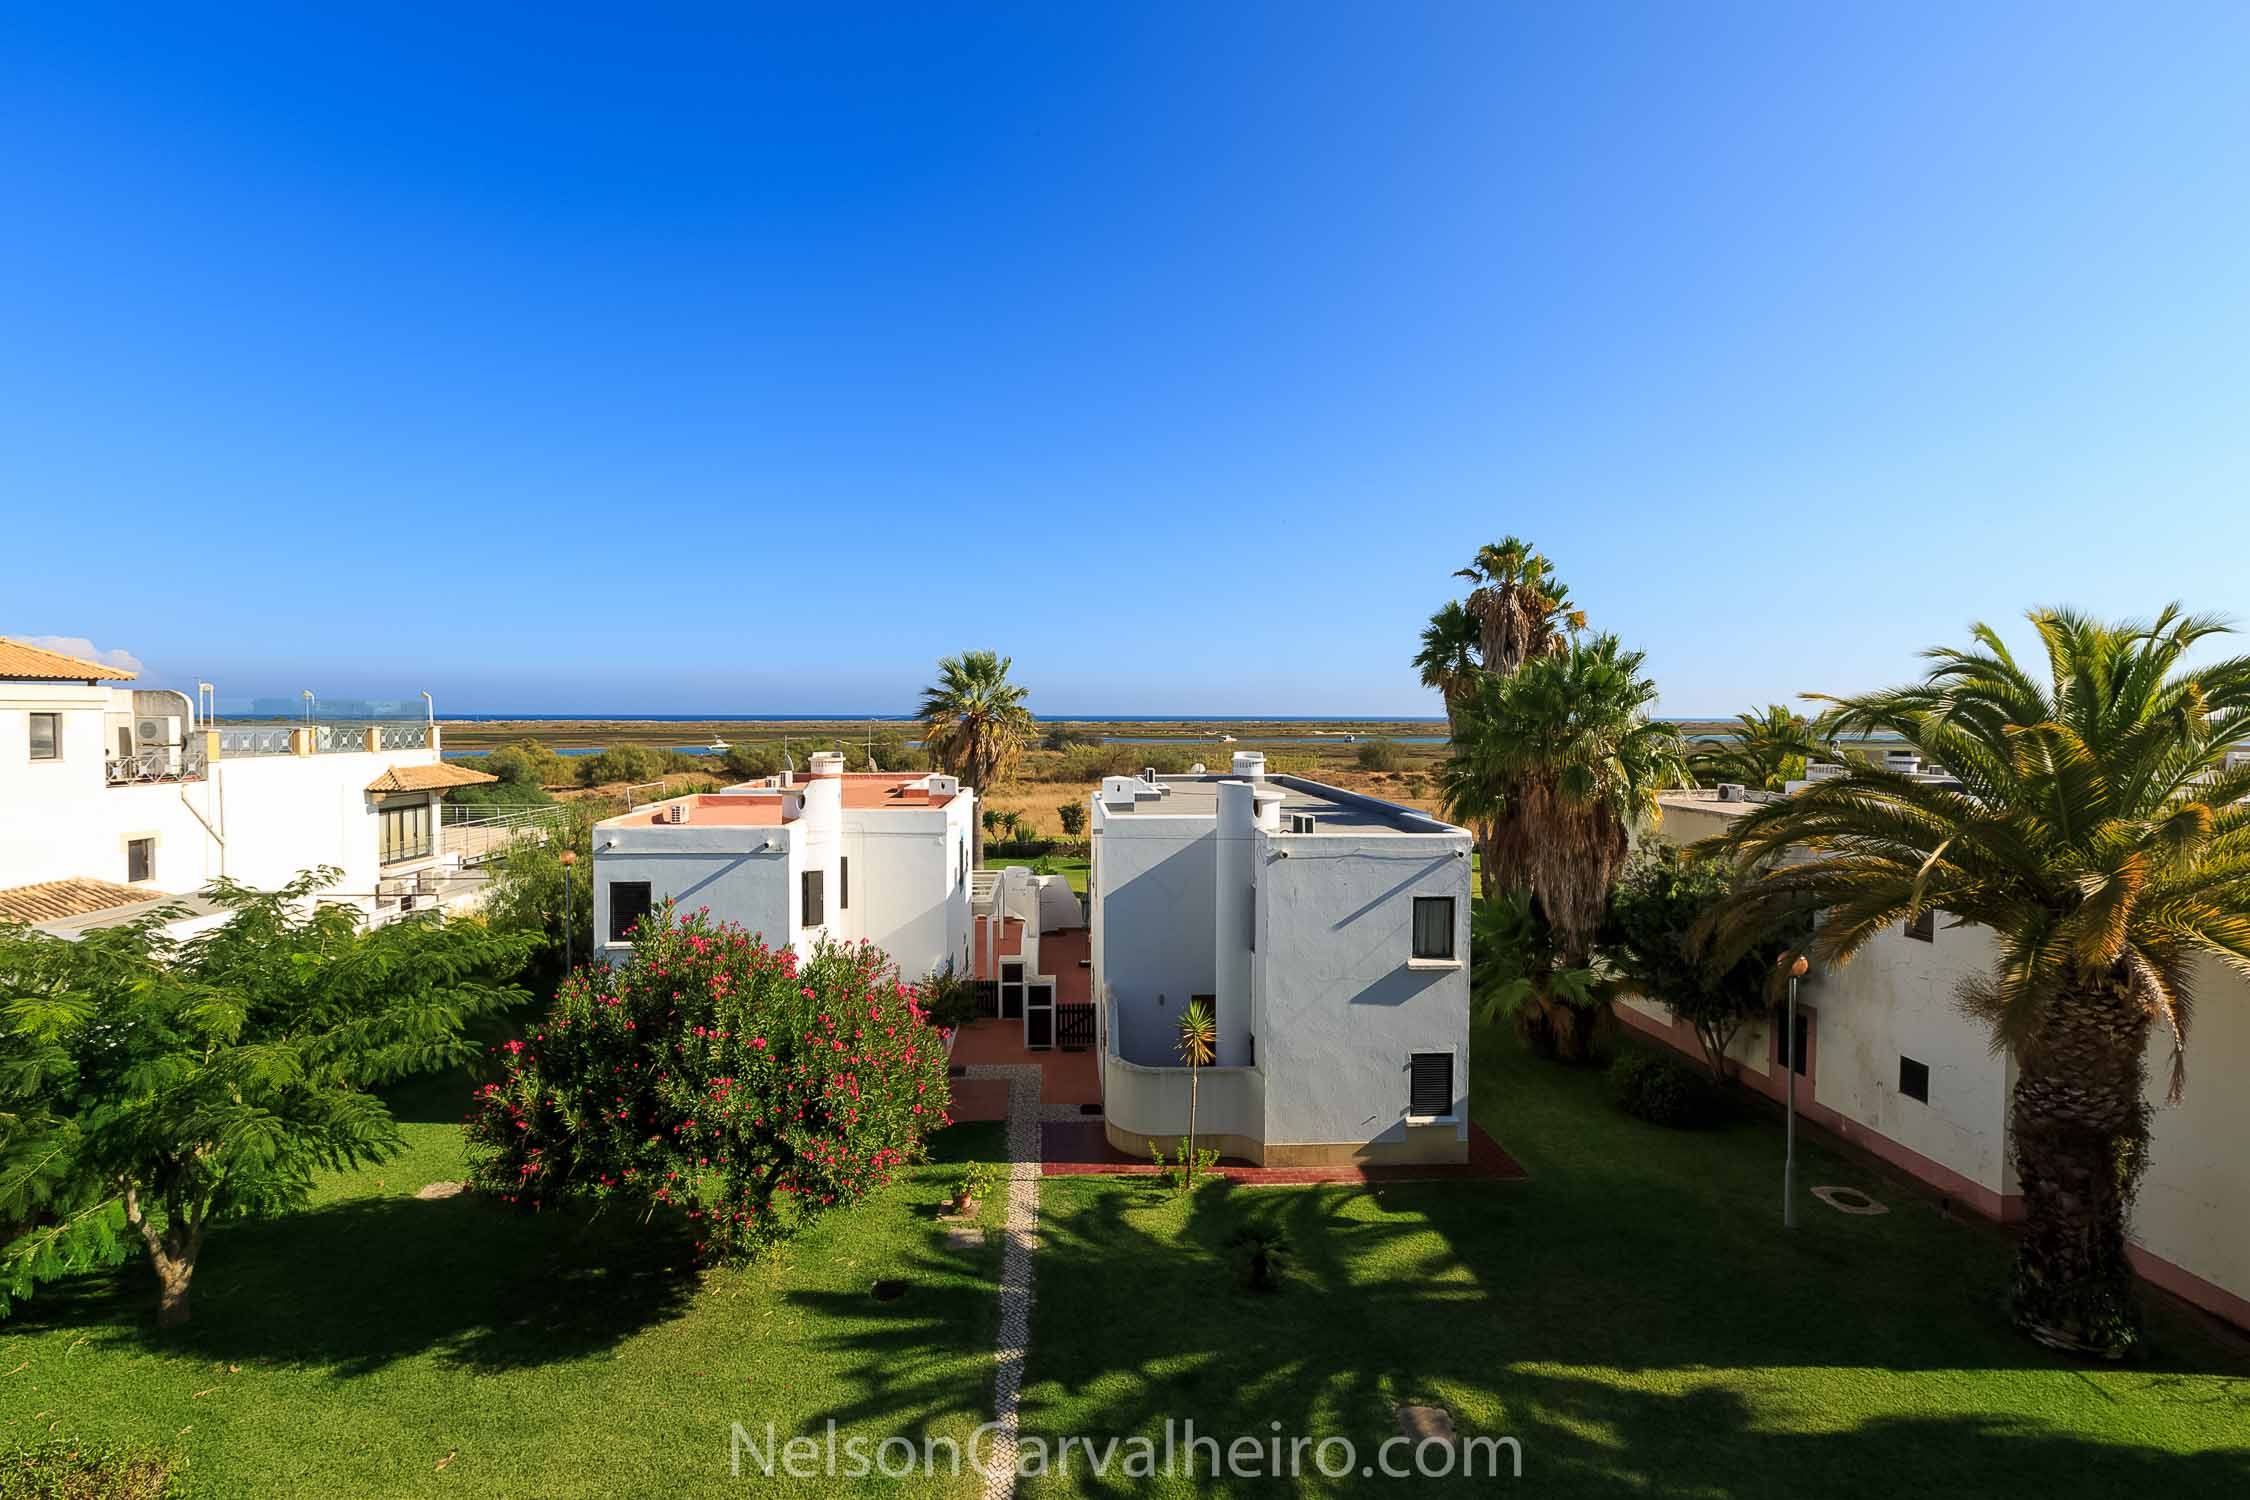 Nelson_Carvalheiro_Algarve_Flipkey_Guide (sea view from my apartment in Tavira)